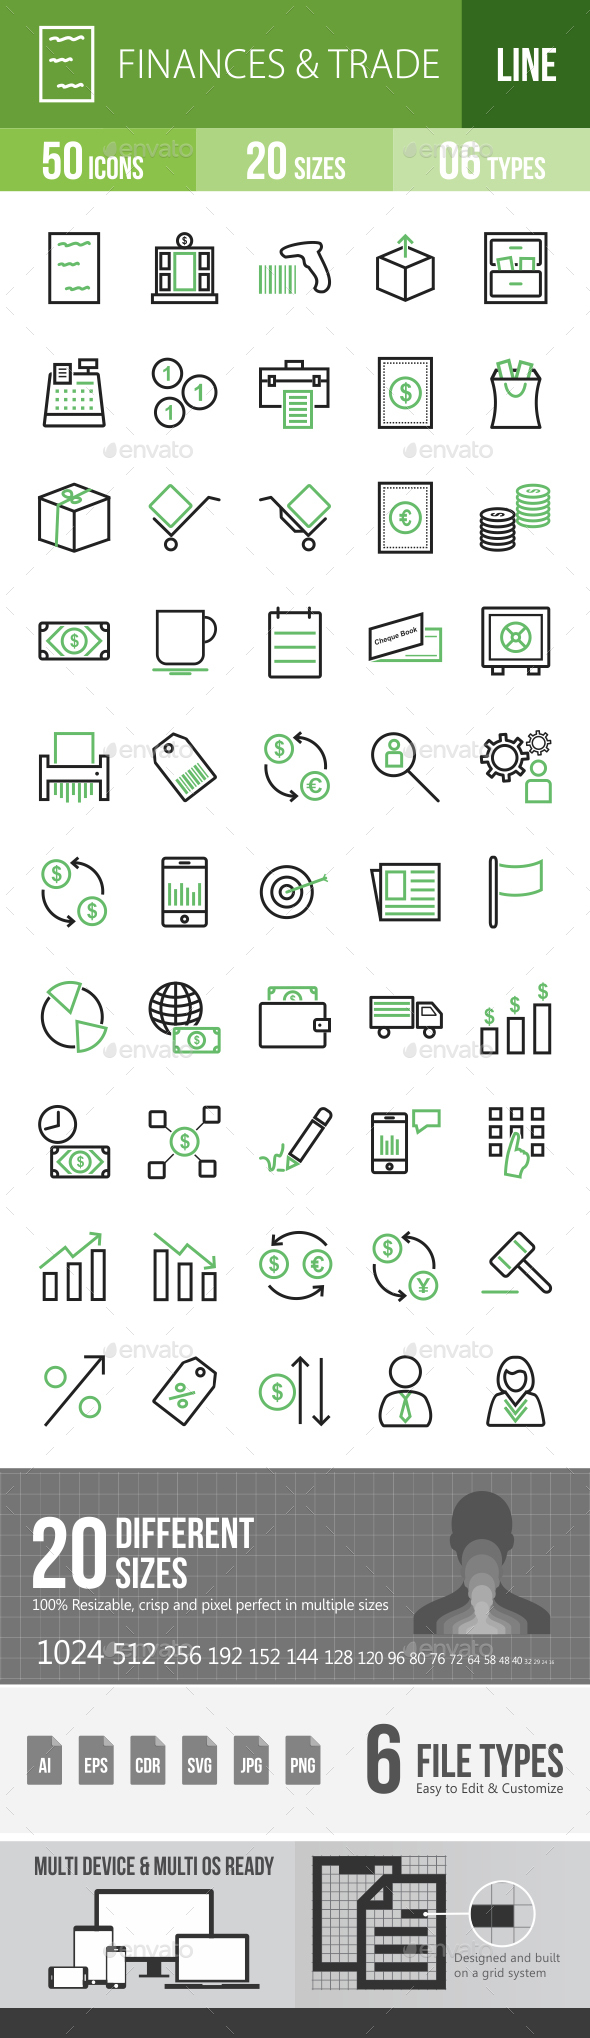 Finances & Trade Line Green & Black Icons - Icons